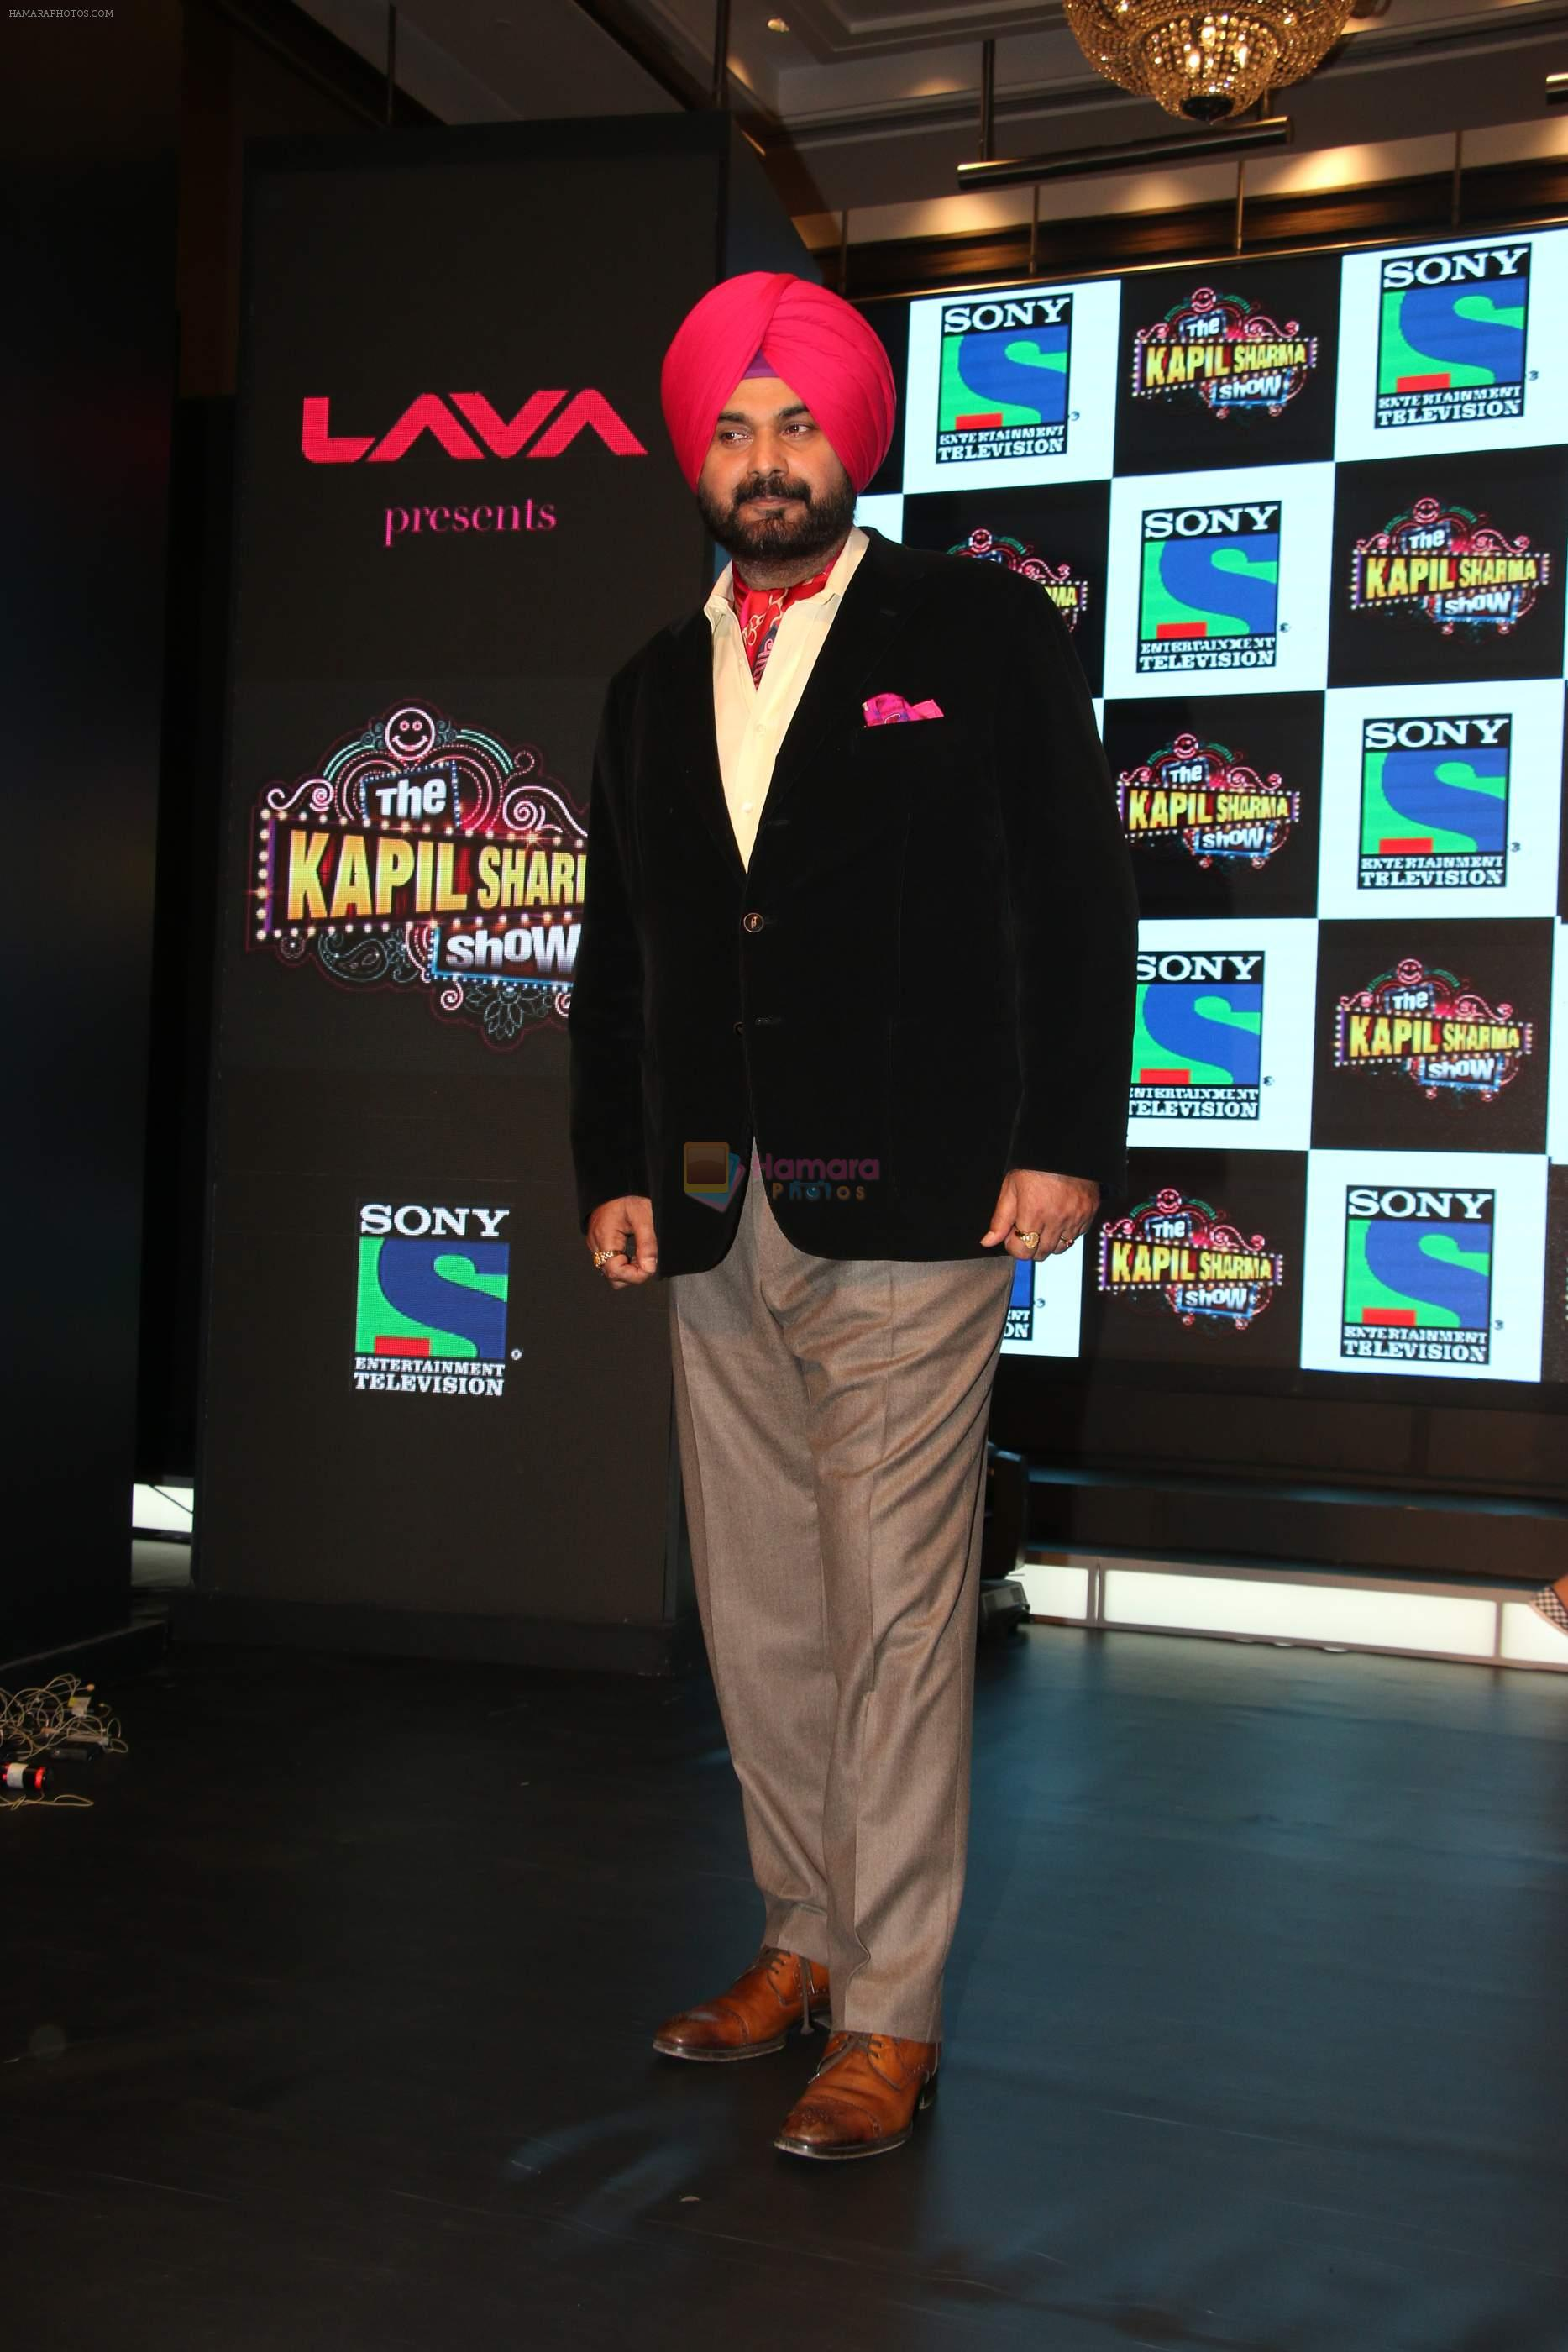 Navjot Singh Sidhu with Kapil Sharma ties up with Sony with new Show The kapil Sharma Show on 1st March 2016